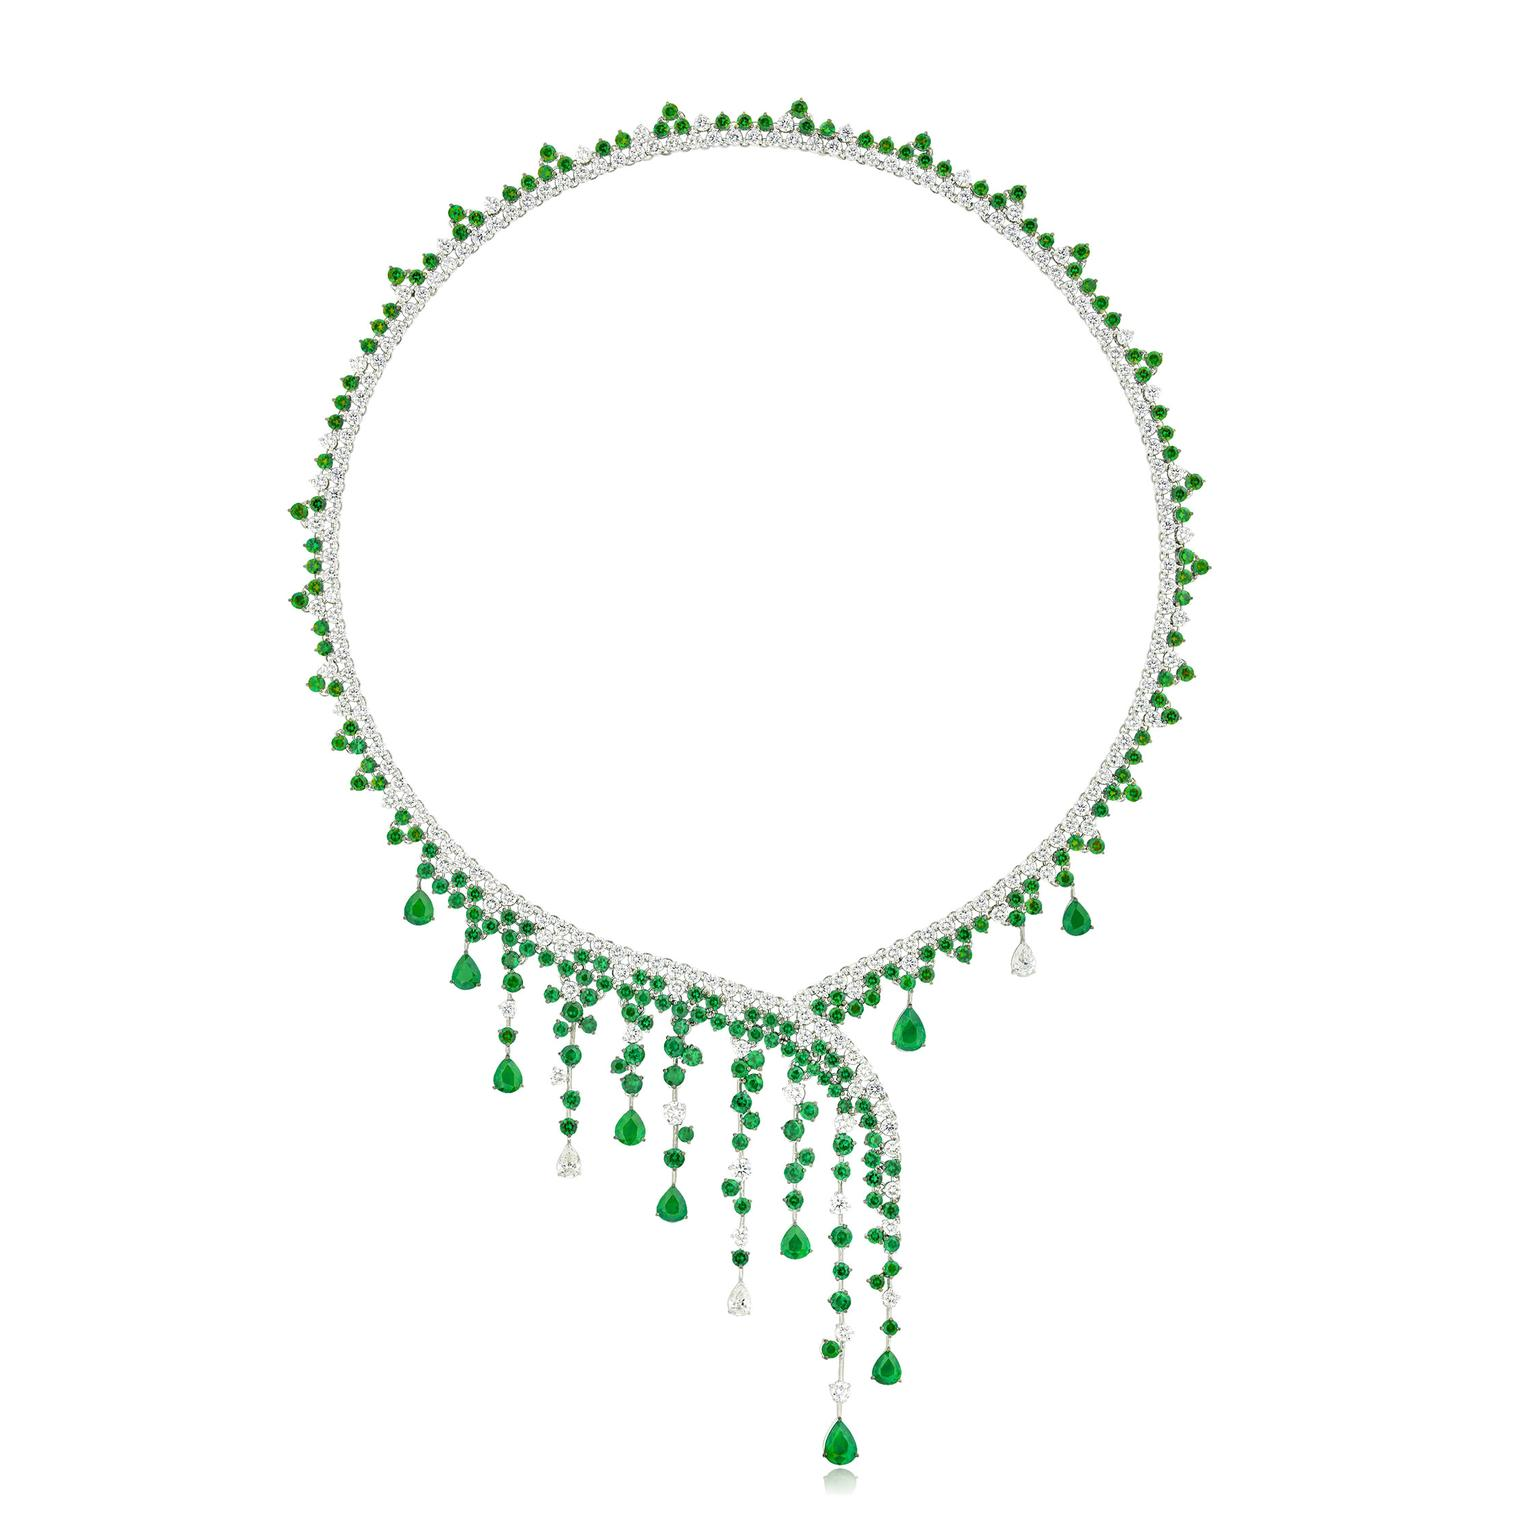 Stenzhorn Diana emerald and diamond necklace